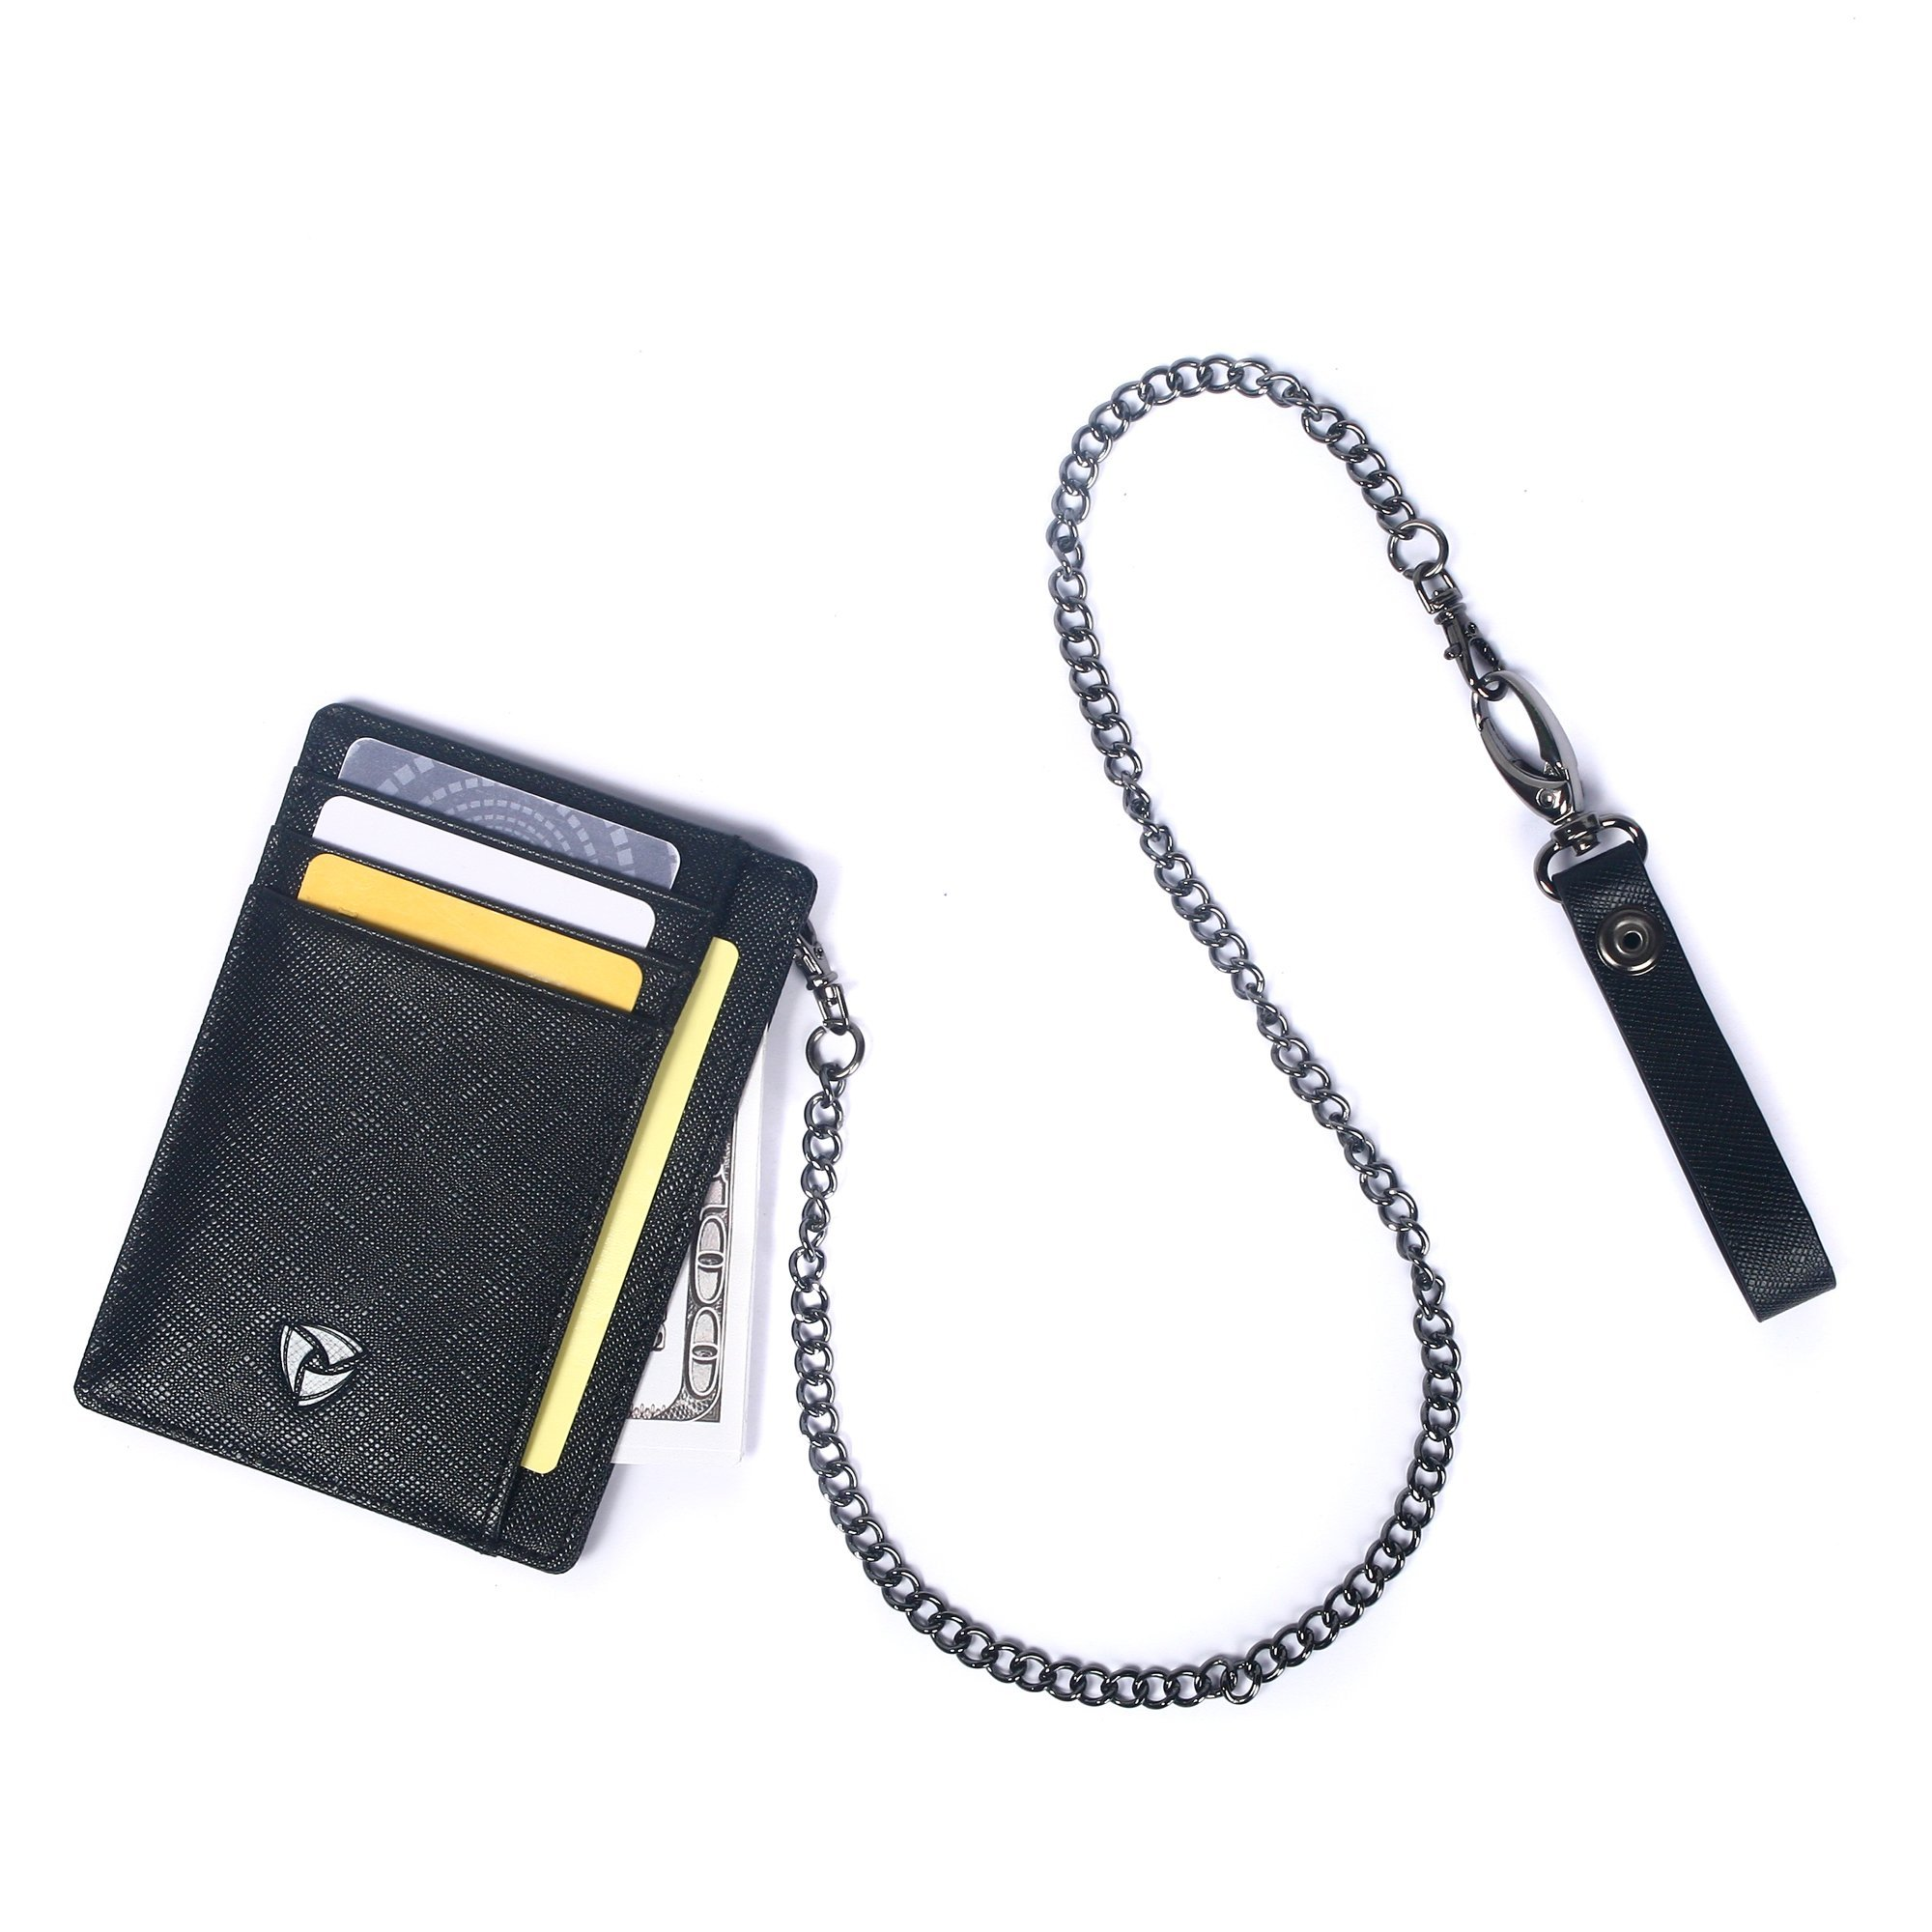 SOS EDC Minimalist Saffiano Leather RFID Blocking Anti-theft Wallet with Removable Chain by SOS EDC